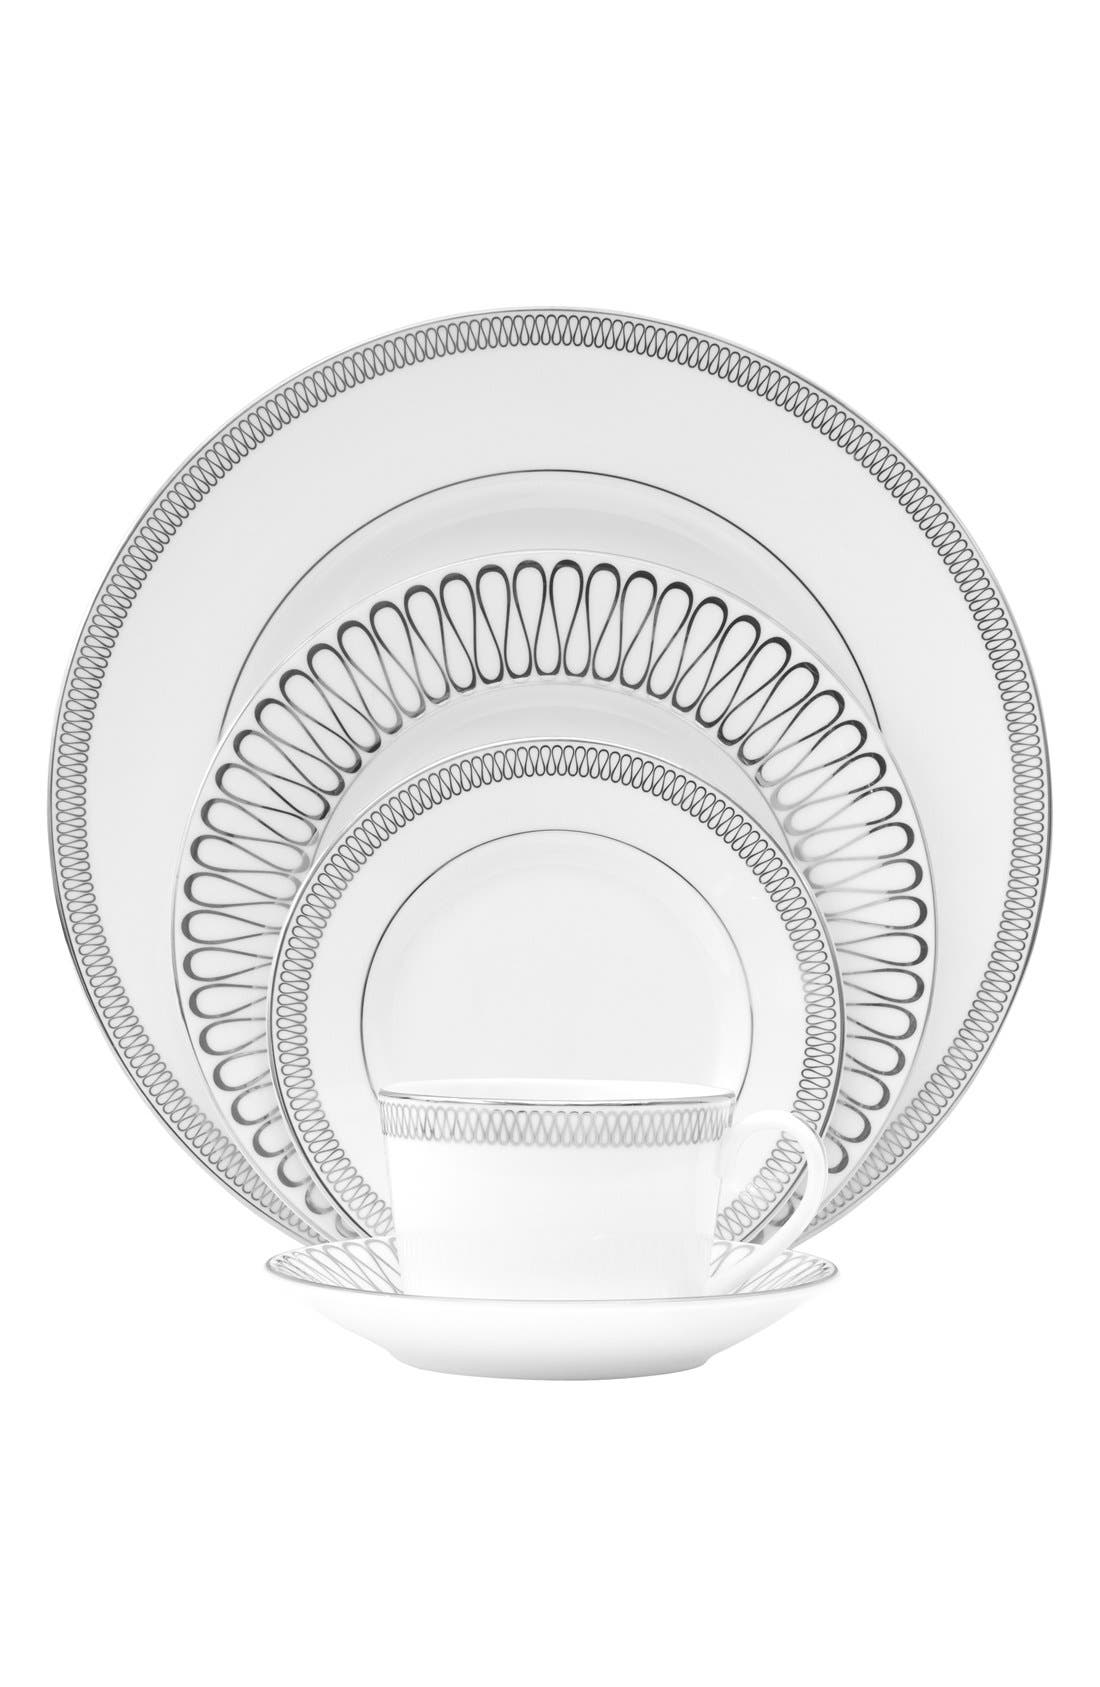 MoniqueLhuillierWaterford 'Opulence' 5-Piece China Place Setting